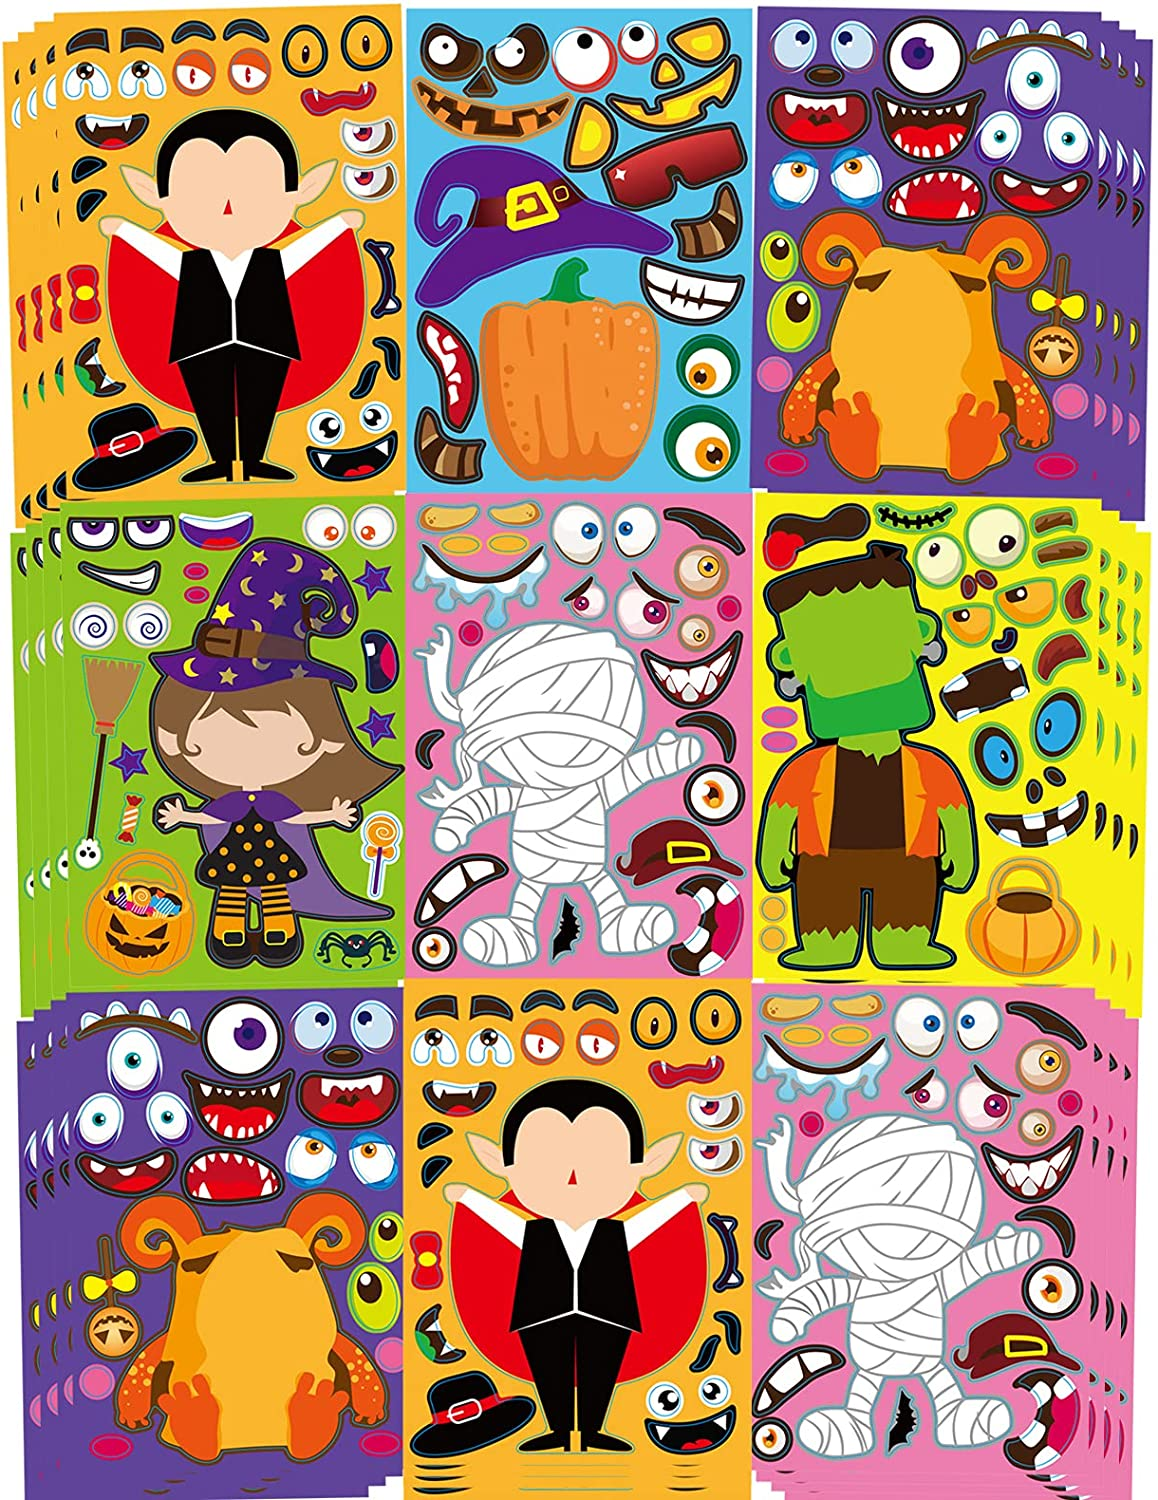 42 Sheets Halloween Party Games Stickers for Kids Make Your Own Halloween Stickers, Kids Halloween Activities Stickers Pumpkin Mummie Zombie Witche Monster Vampire for Kids Halloween Party Favors